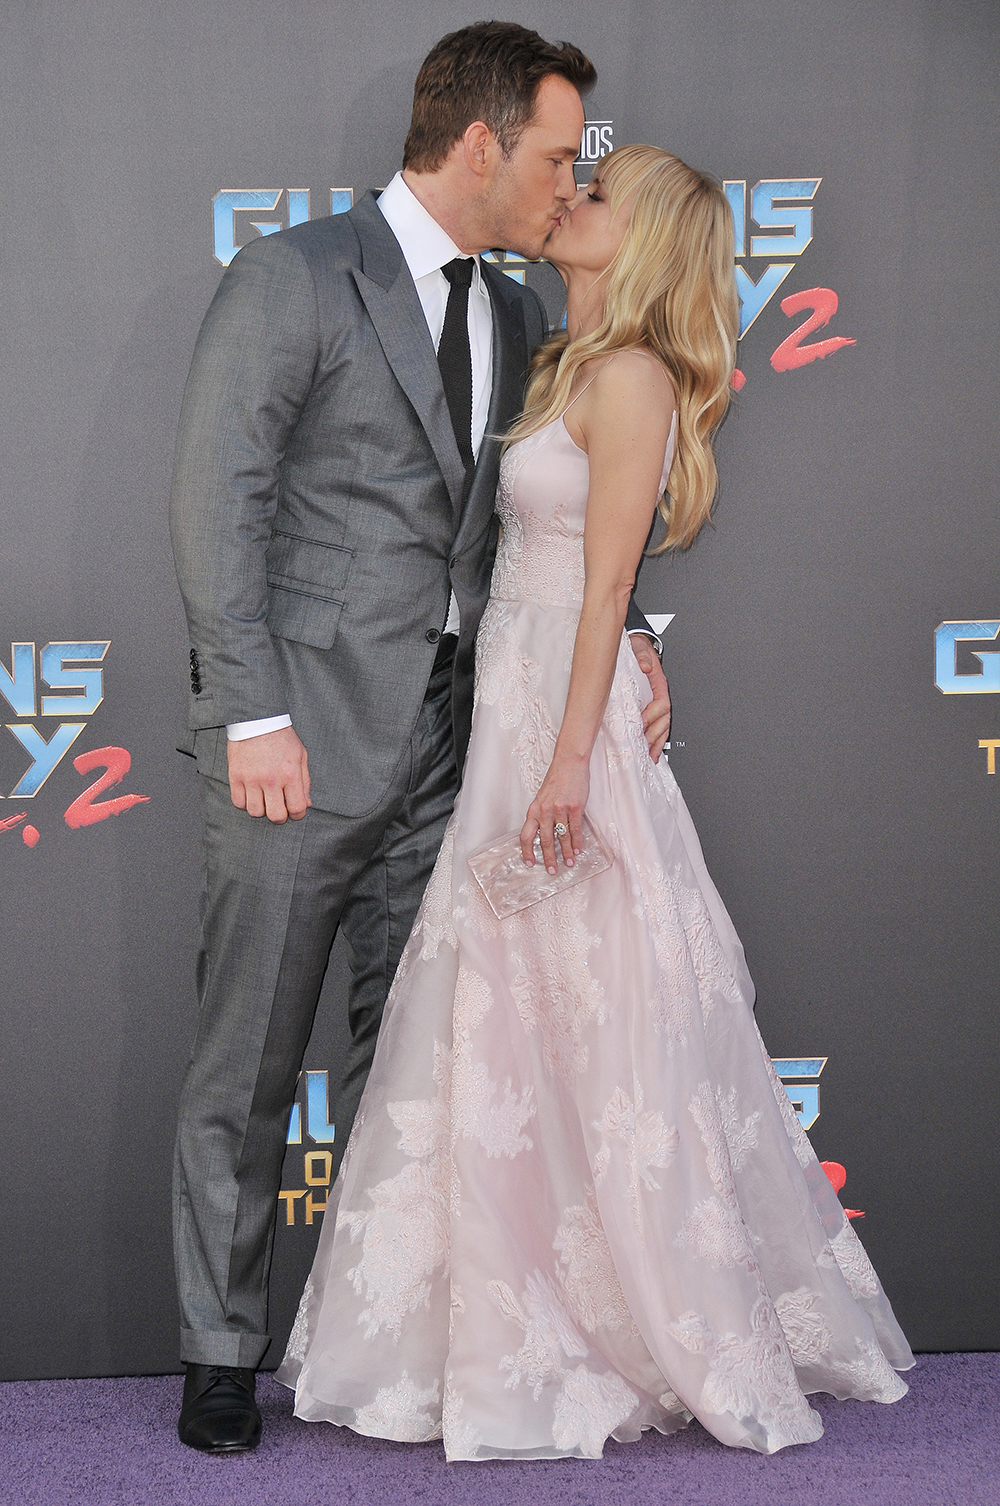 Chris Pratt And Anna Faris Divorce After Eight Years Of Marriage PA 30988369 resize